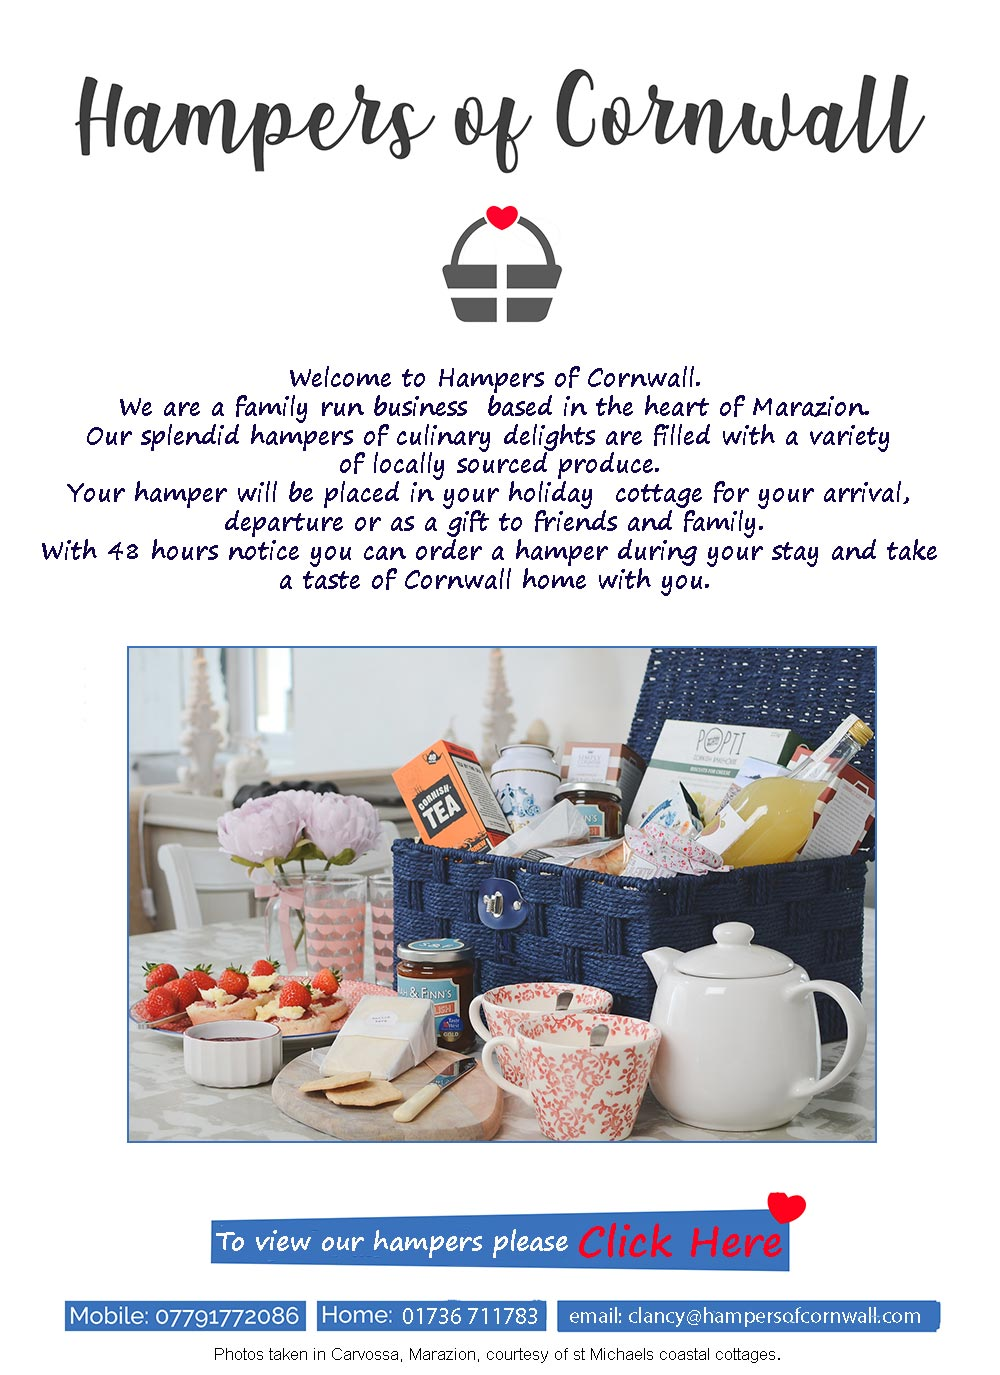 Treat yourself to a Cornish Hamper for your arrival or as a gift for friends. https://www.hampersofcornwall.com